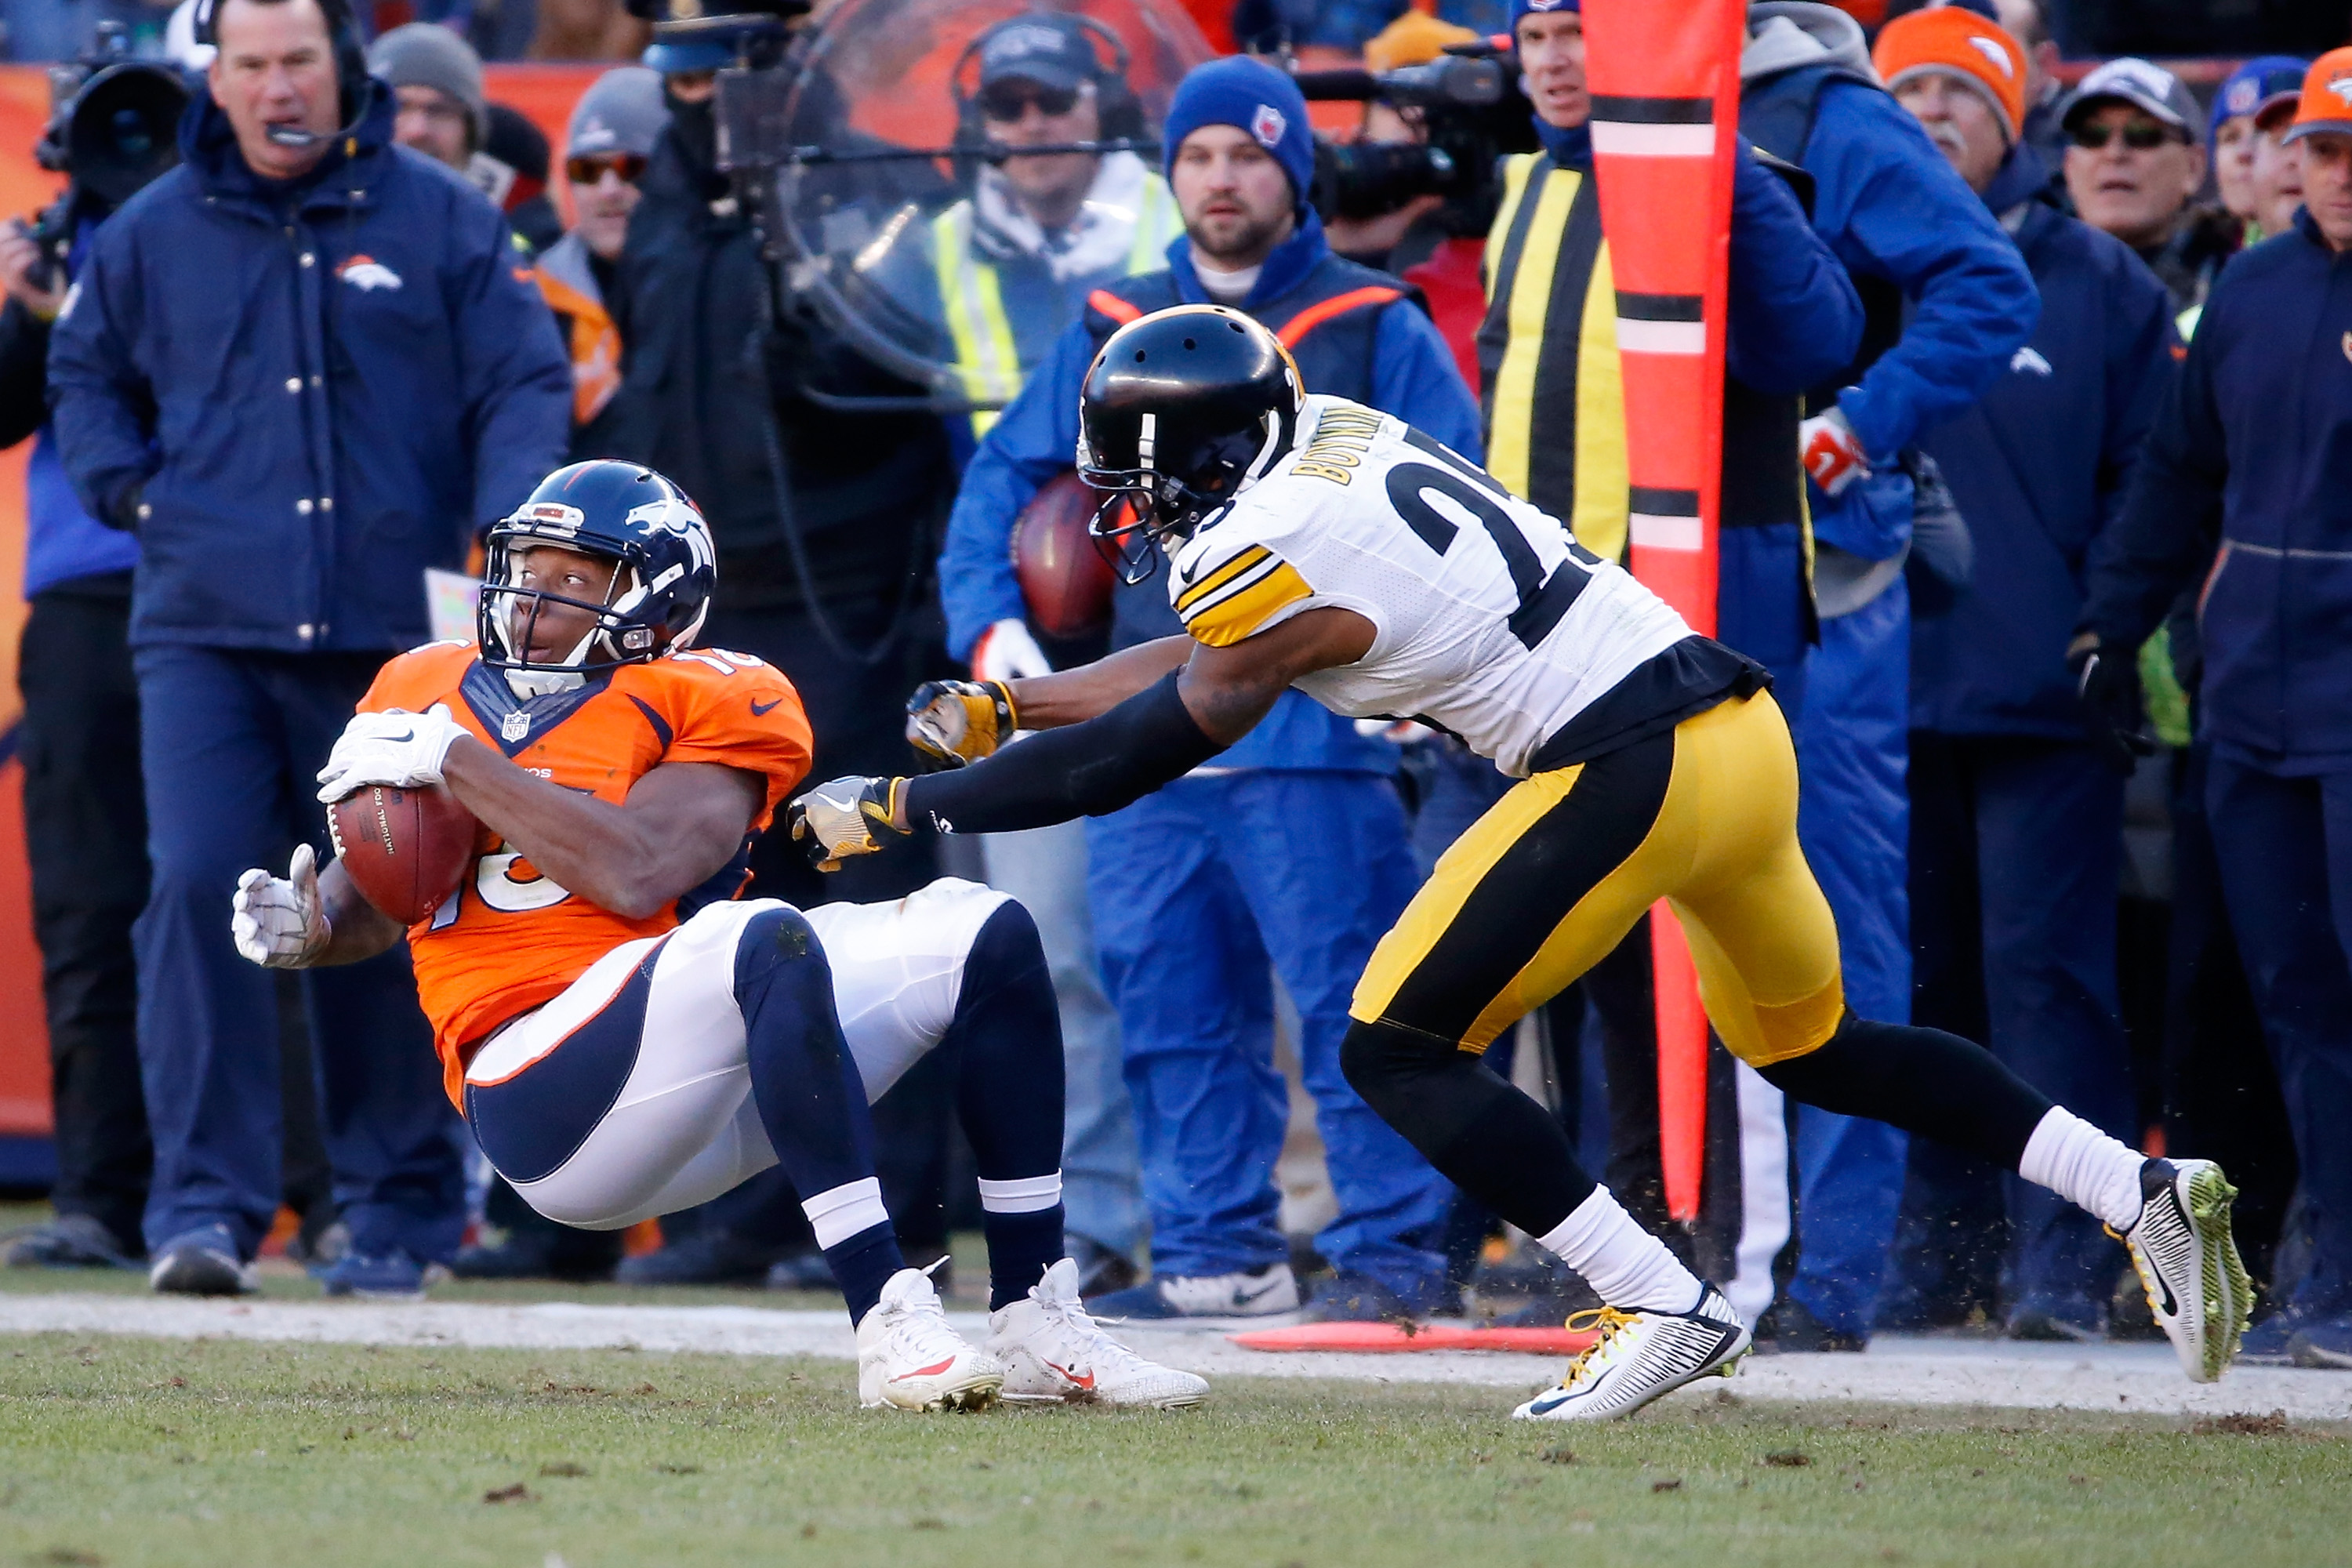 Emmanuel Sanders #10 of the Denver Broncos has a catch under coverage by Brandon Boykin #25 of the Pittsburgh Steelers during the AFC Divisional Playoff Game at Sports Authority Field at Mile High on January 17, 2016 in Denver, Colorado. (Photo by Sean M. Haffey/Getty Images)